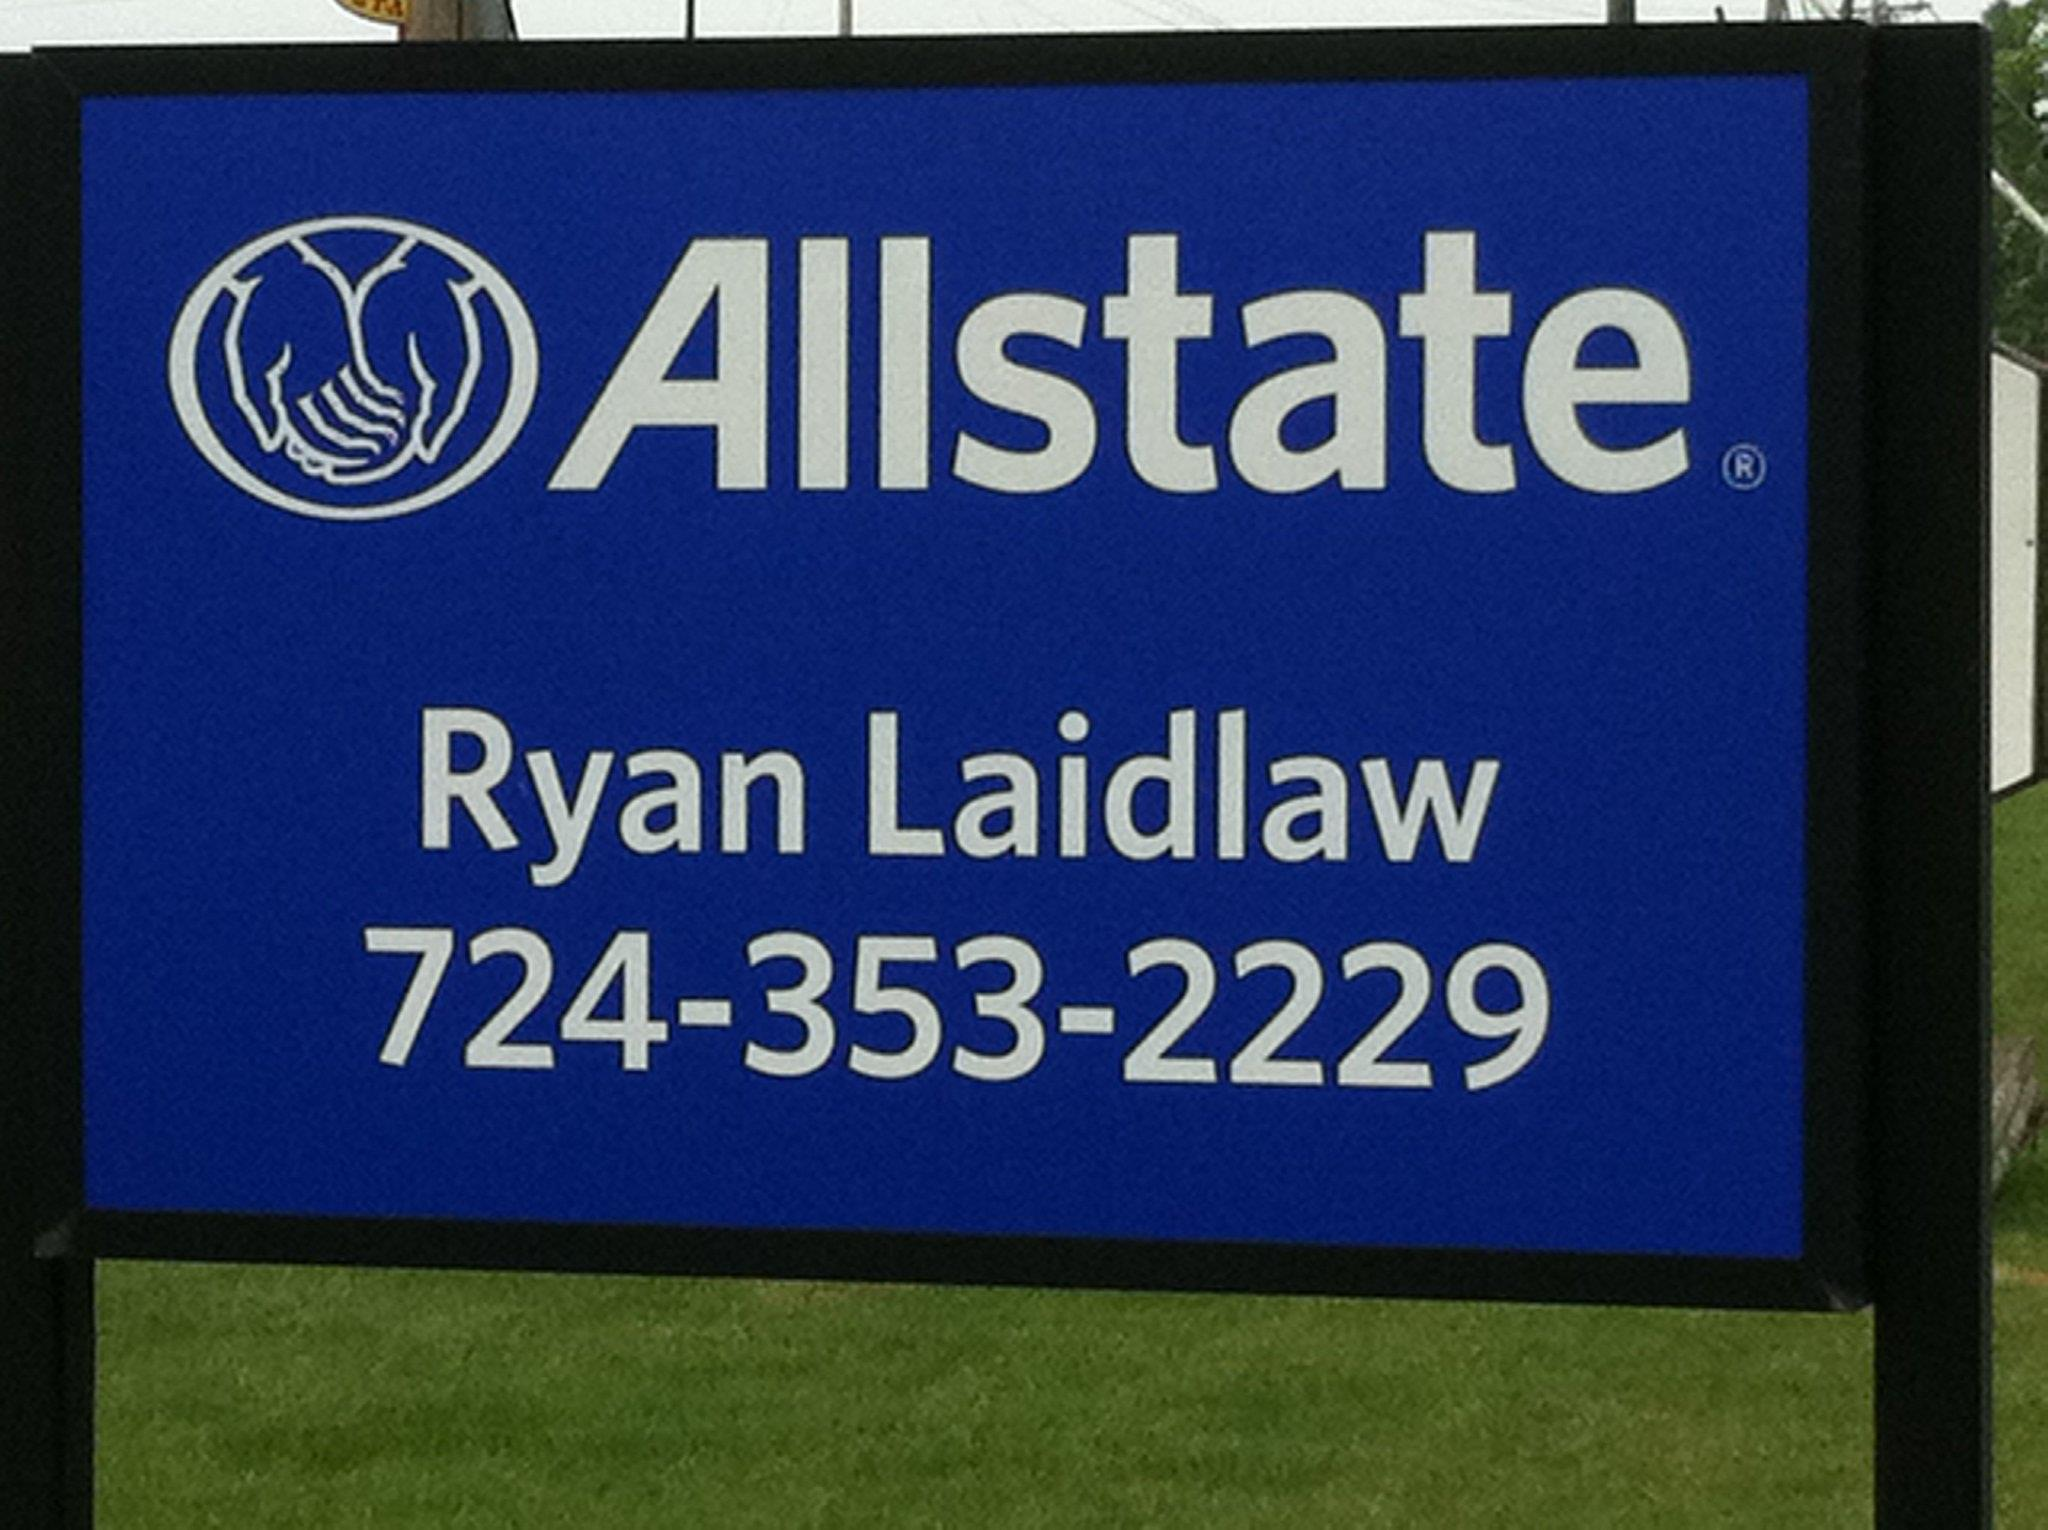 Ryan Laidlaw: Allstate Insurance image 1